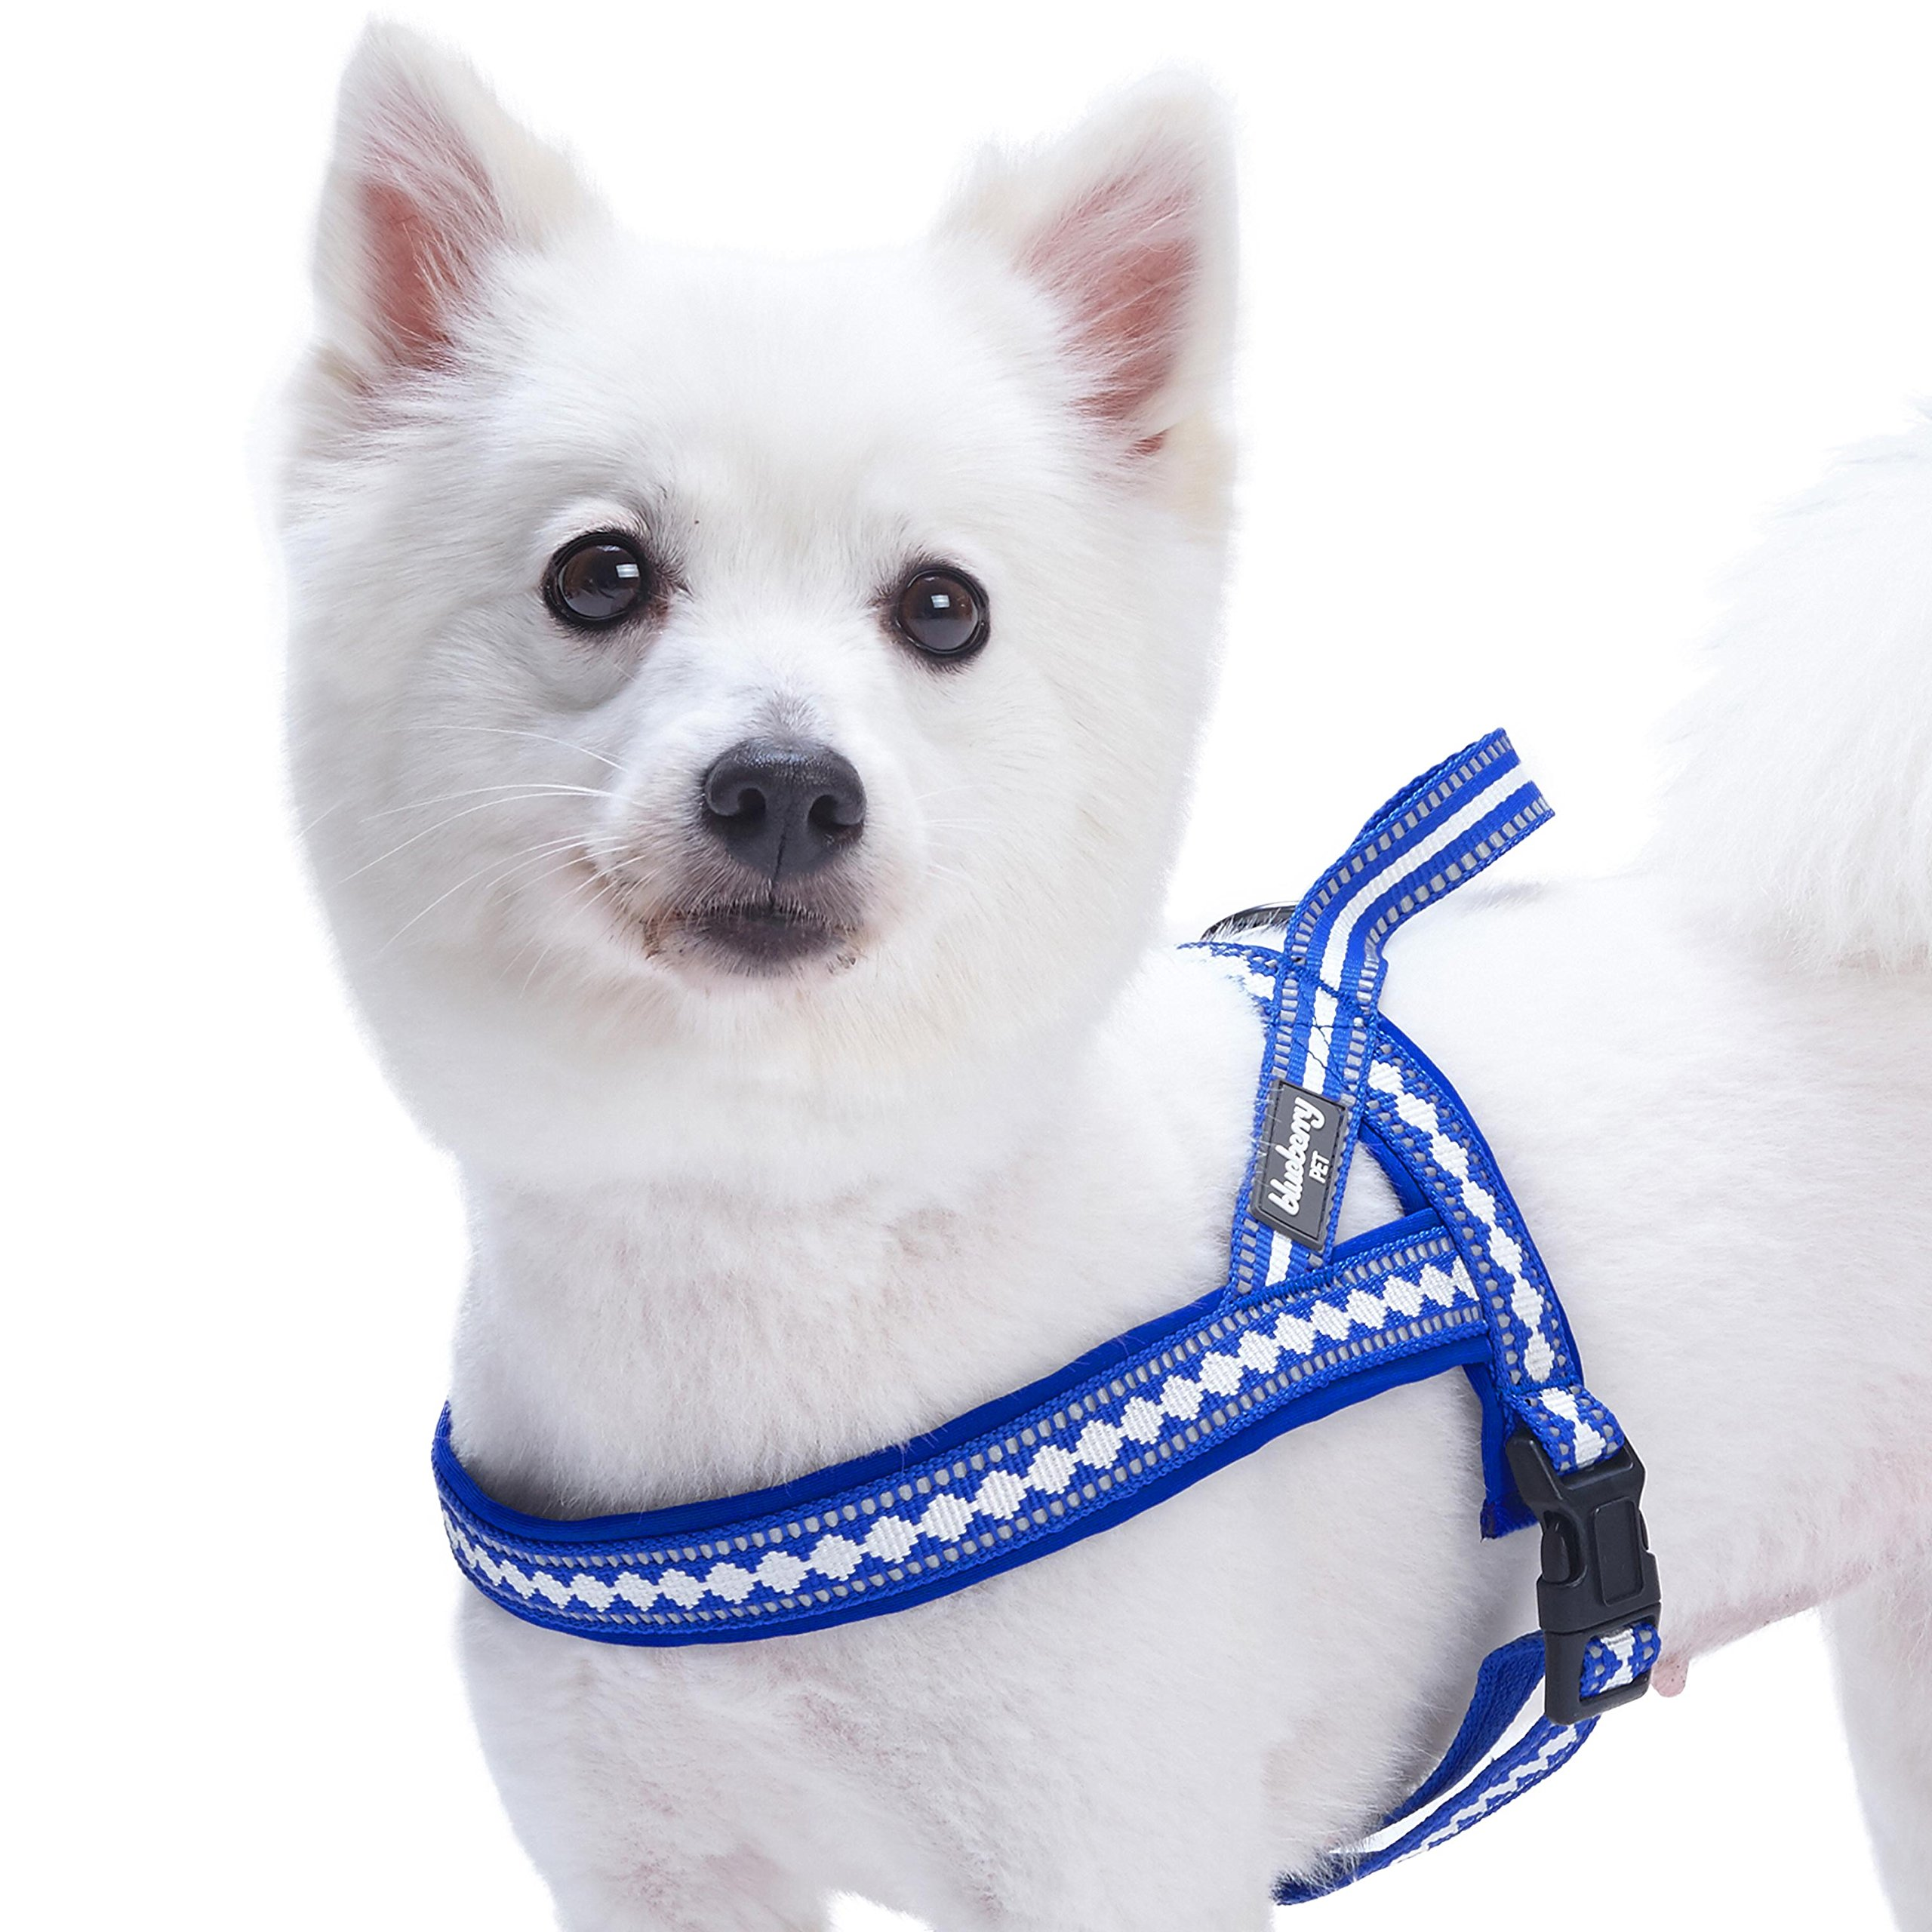 Blueberry Pet 7 Colors Soft & Comfy 3M Reflective Jacquard Padded Dog Harness, Chest Girth 25.5'' - 31.5'', Palace Blue, M/L, Adjustable Harnesses for Dogs by Blueberry Pet (Image #3)